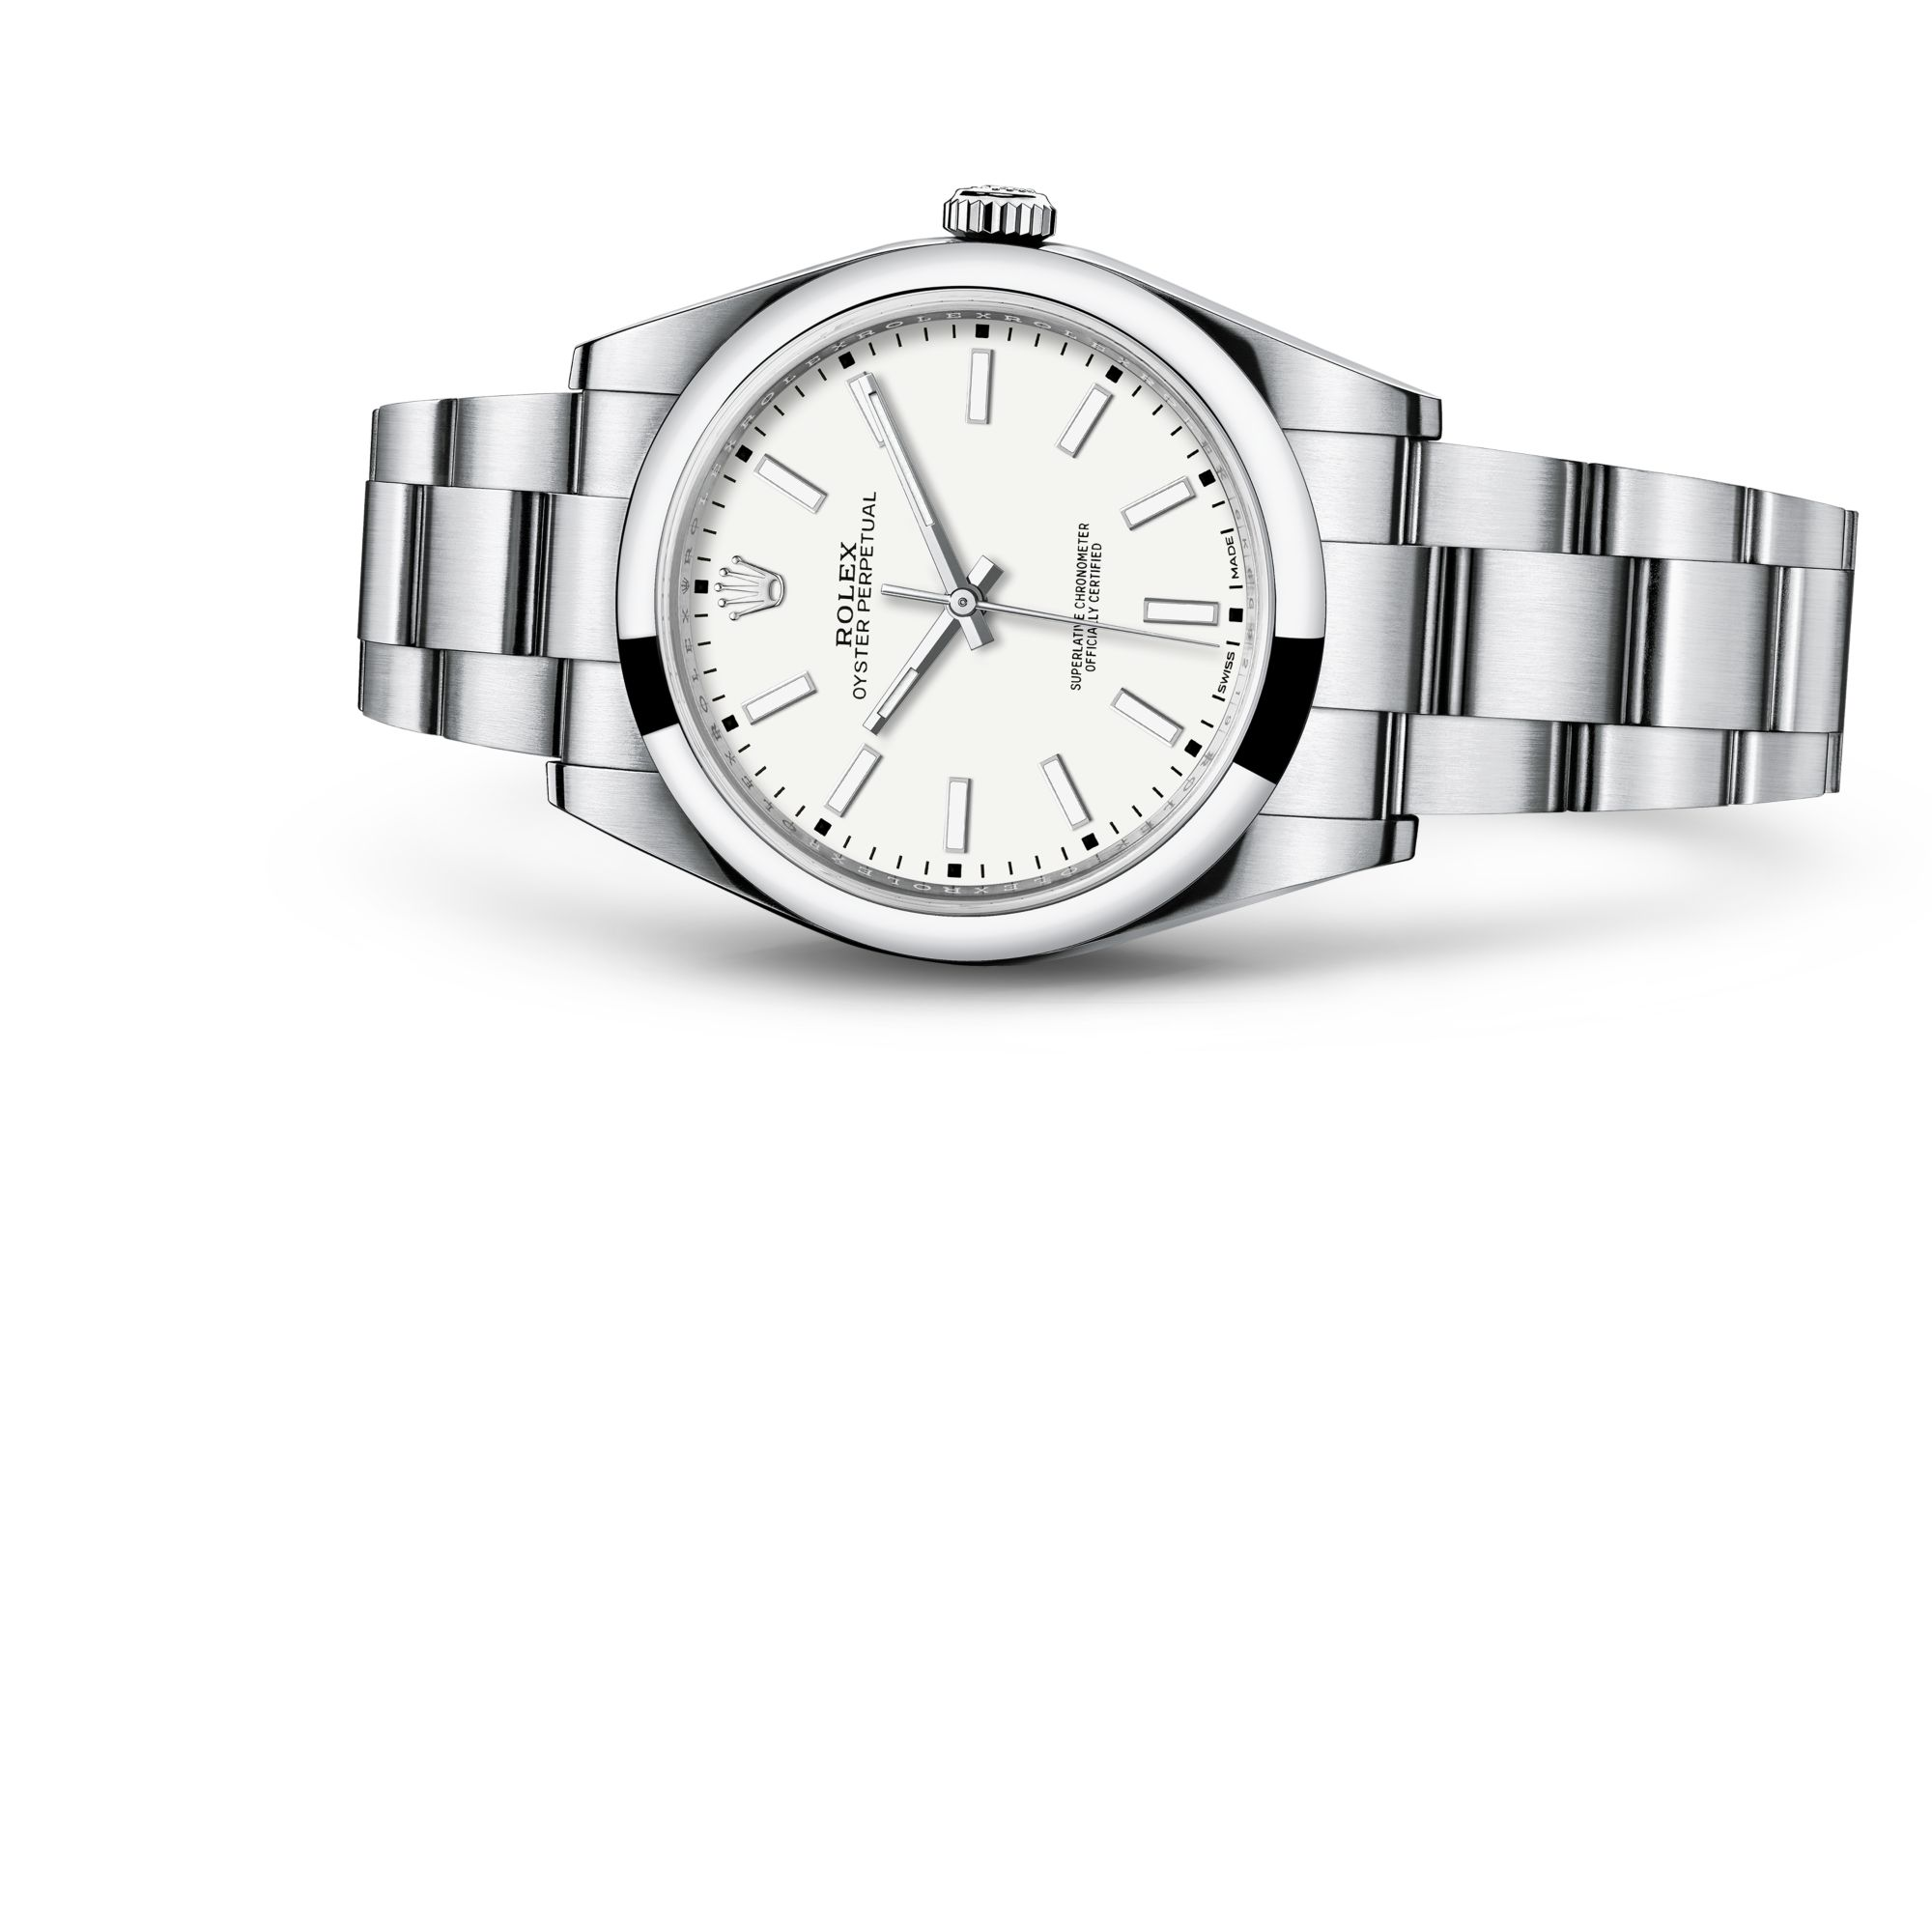 Rolex Oyster Perpetual 39 M114300-0004